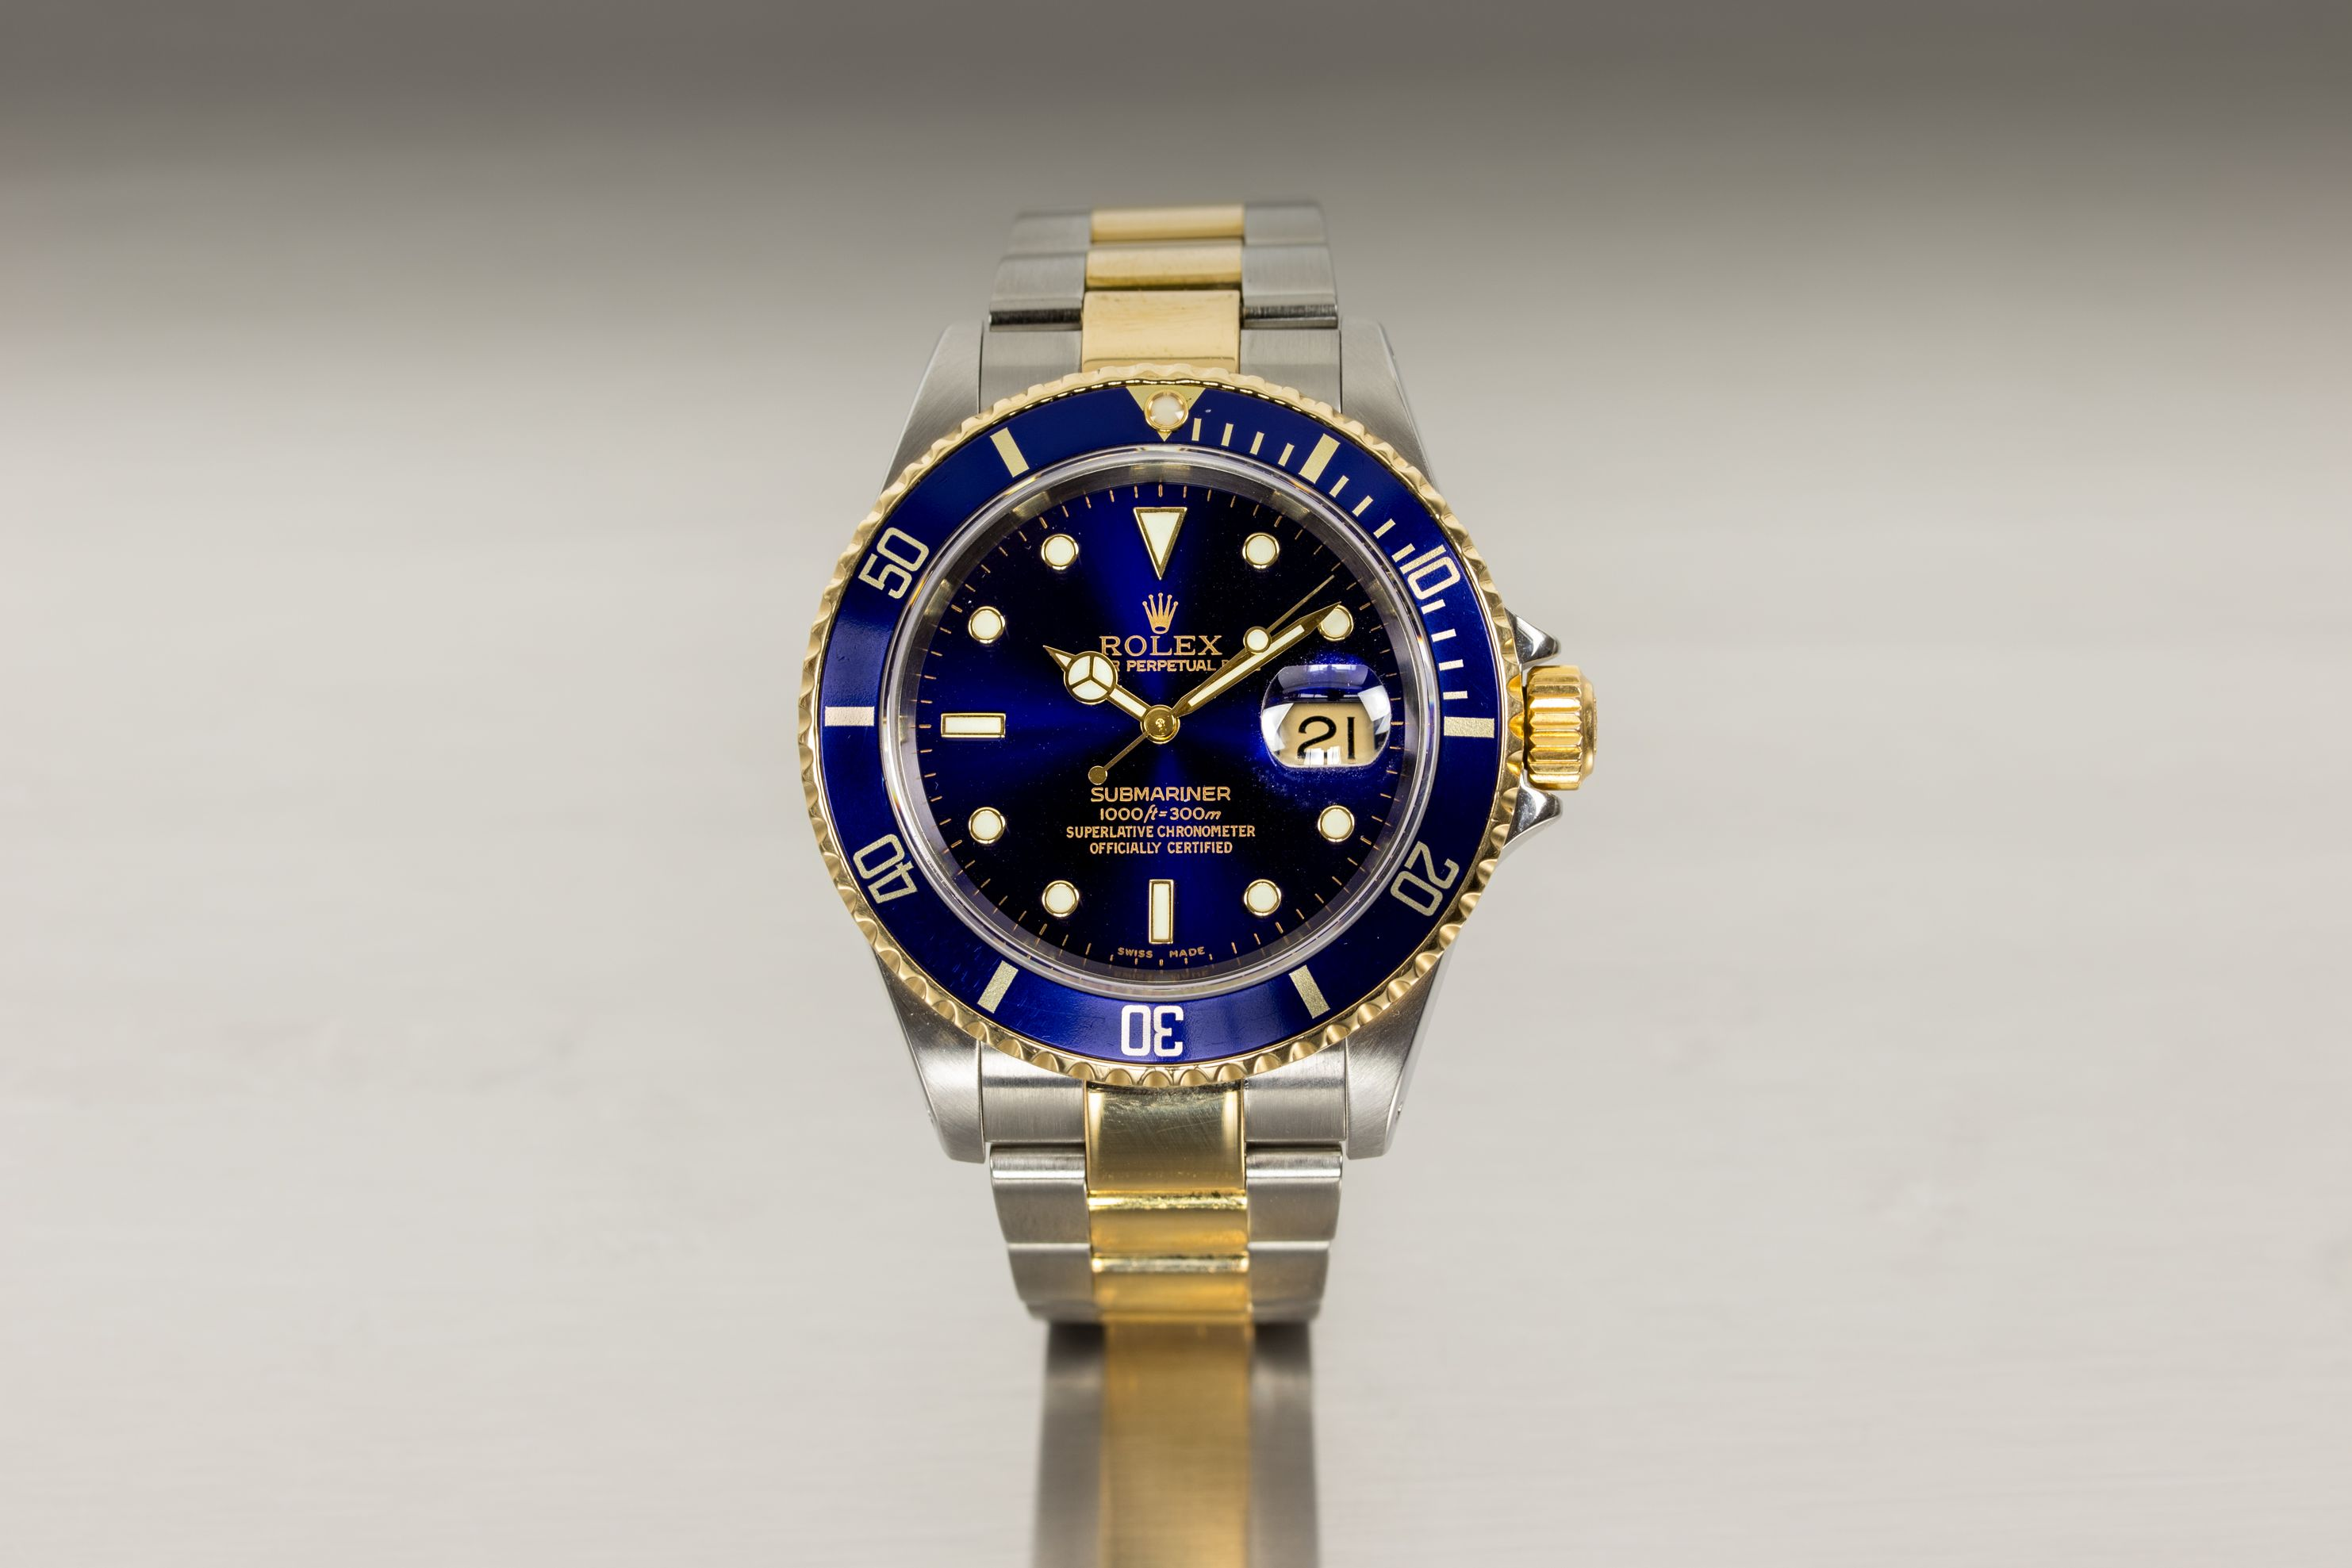 Rolex Submariner Blue Luxury Investment